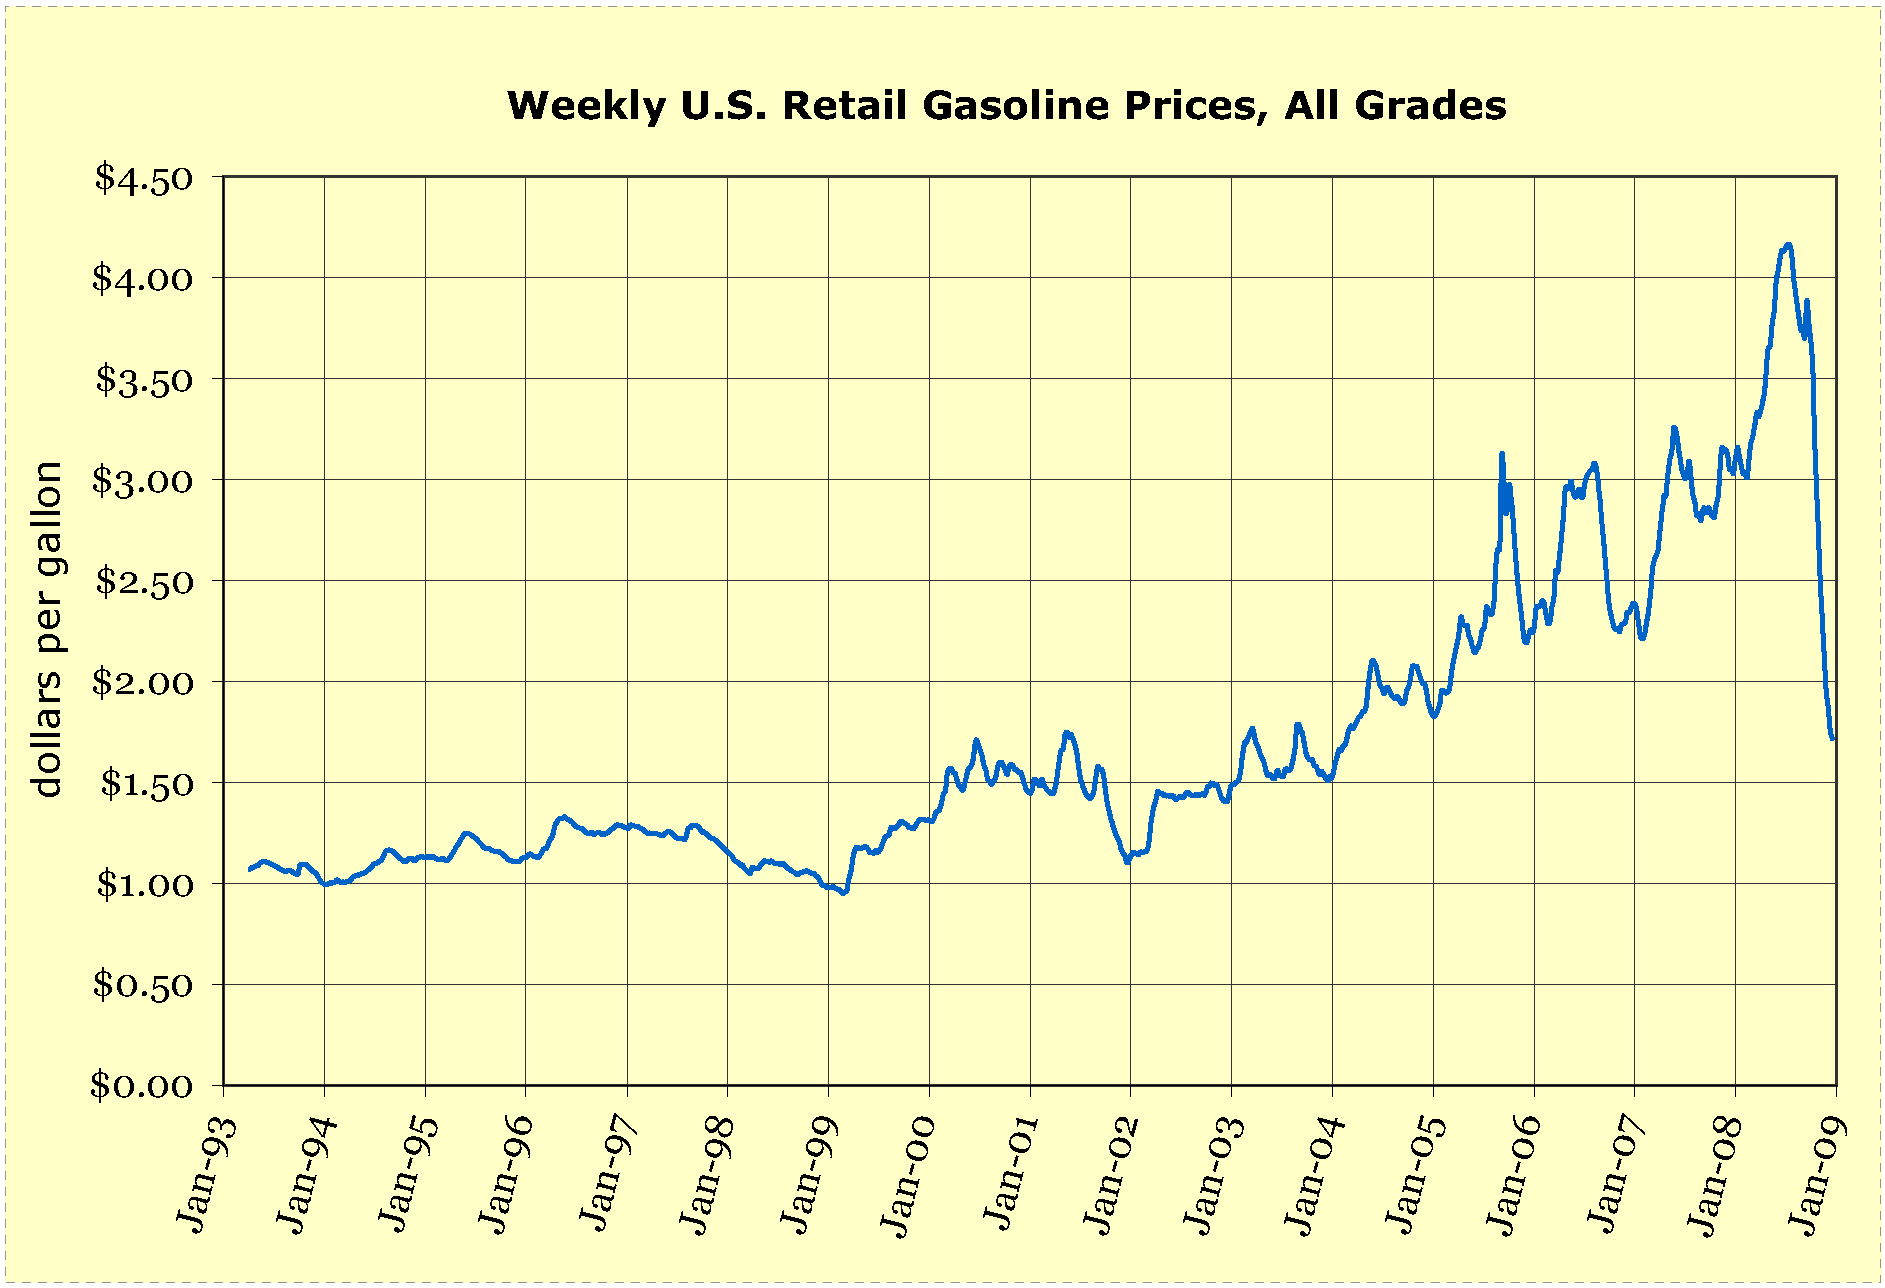 Weekly U.S. Retail Gasoline Prices